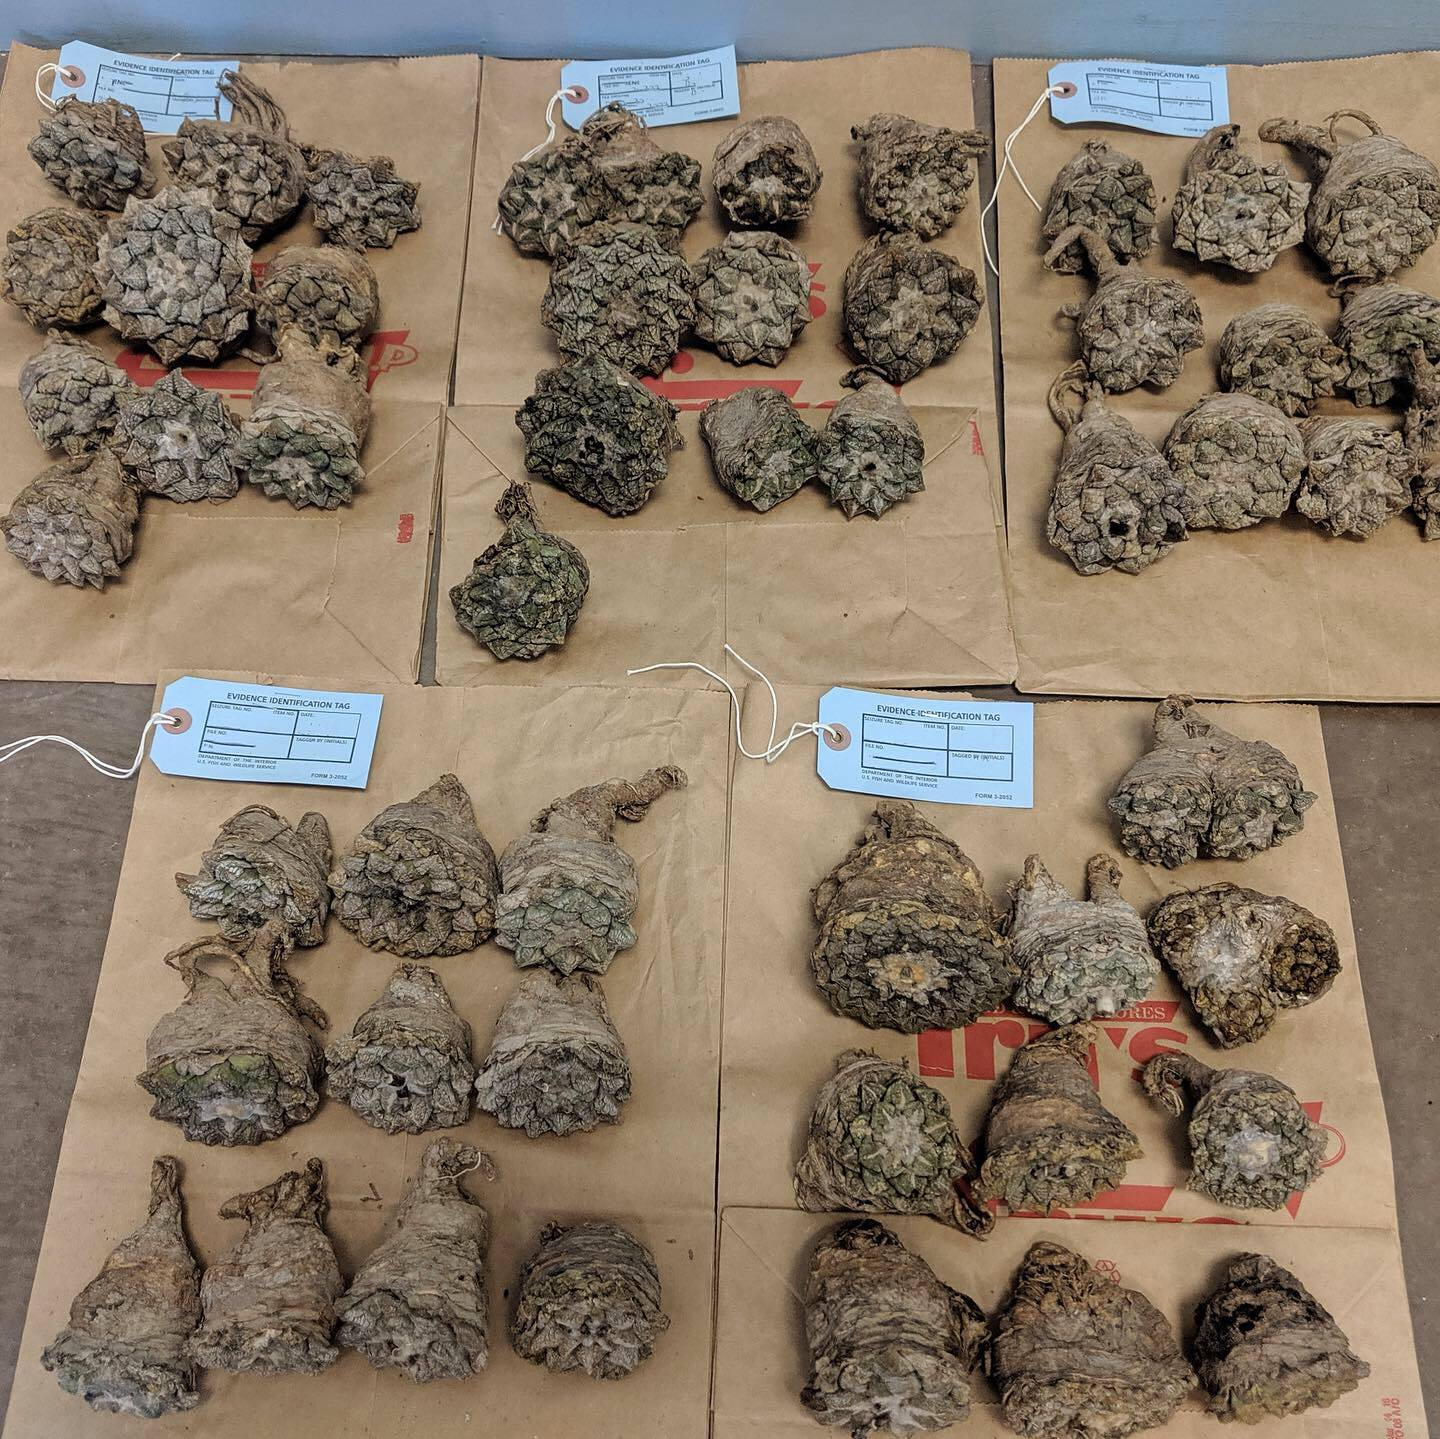 Image of living rock cacti (Ariocarpus fissuratus) confiscated by authorities.